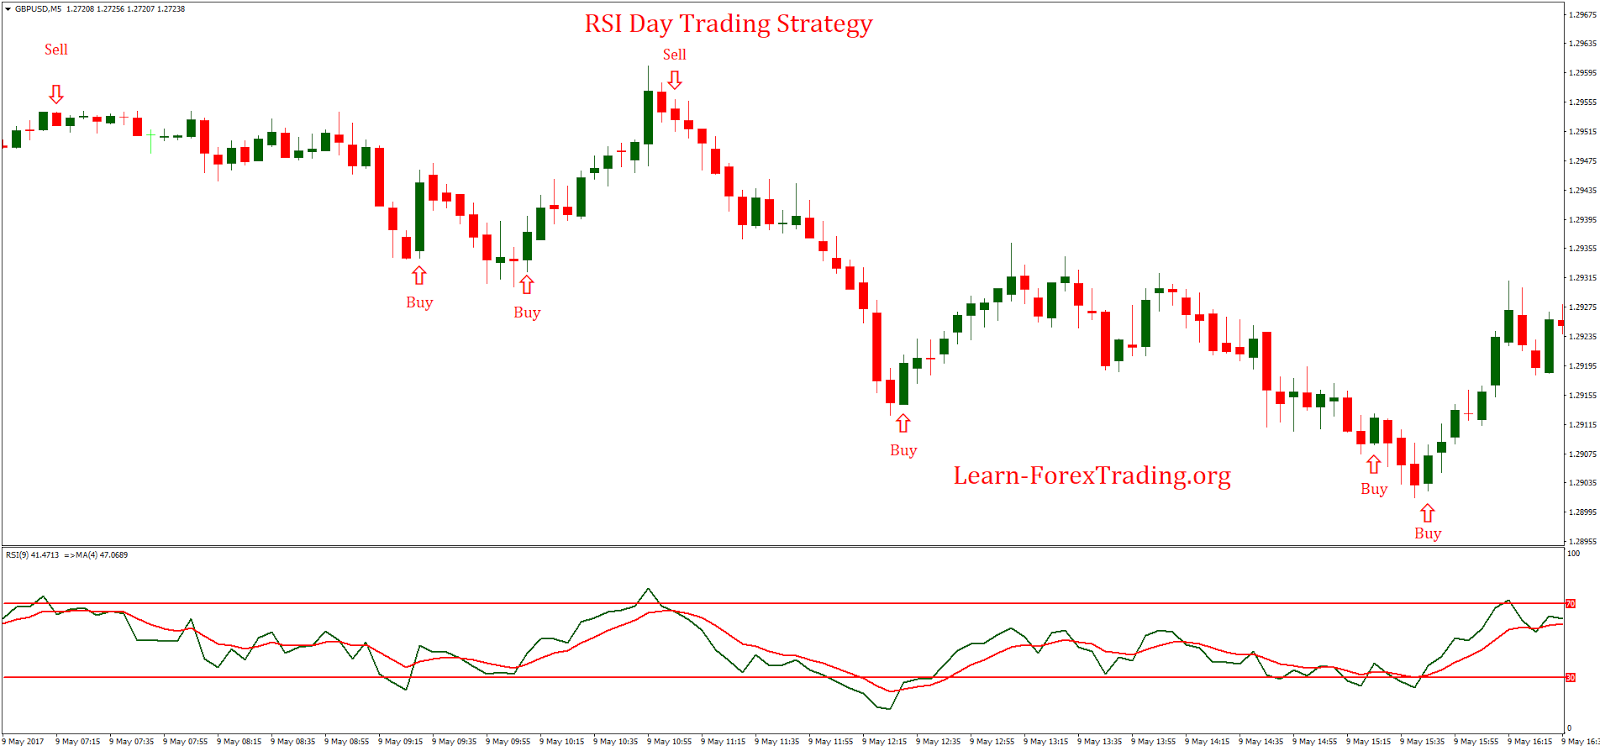 Rsi 2 trading strategies